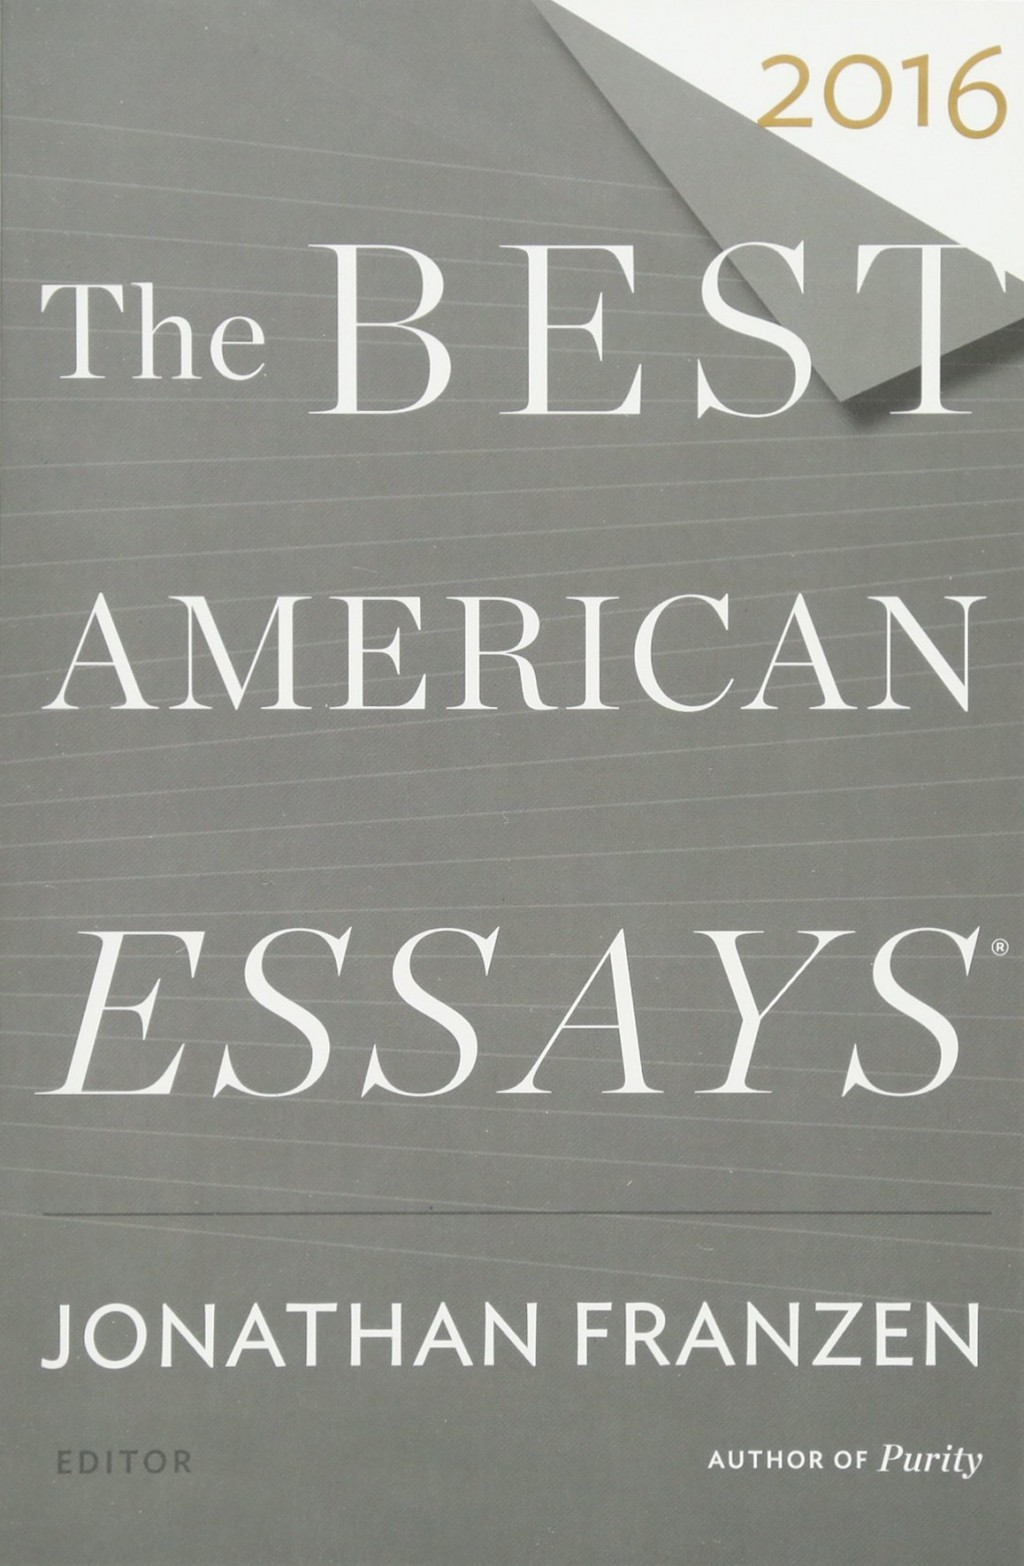 001 71a6bhsgsdl The Best American Essays Essay Phenomenal 2016 Pdf Download Audiobook Sparknotes Large